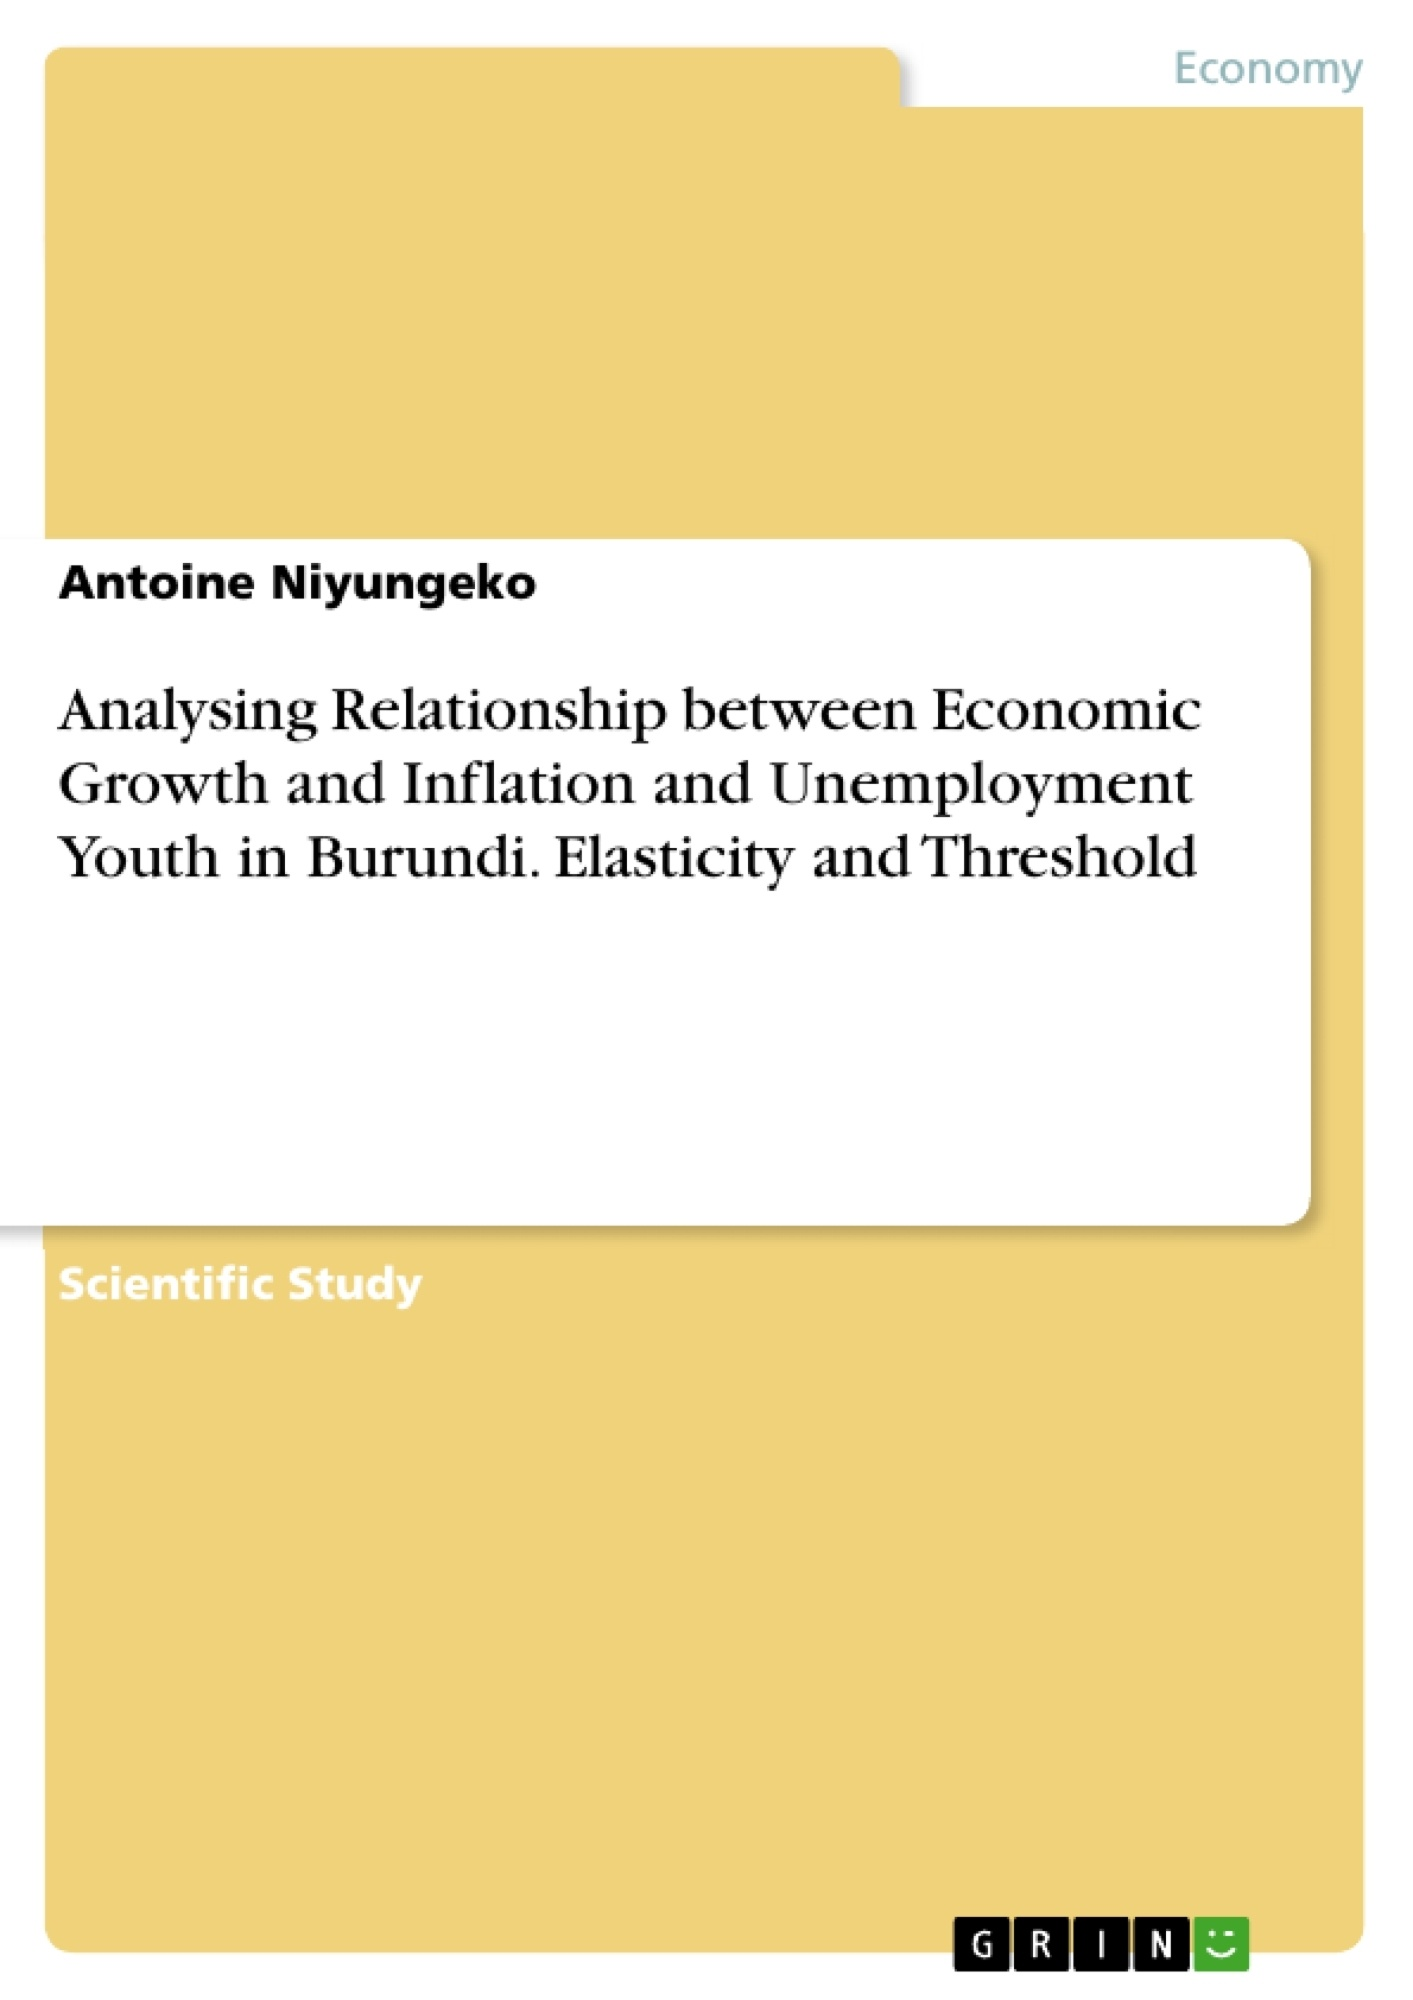 Title: Analysing Relationship between Economic Growth and Inflation and Unemployment Youth in Burundi. Elasticity and Threshold